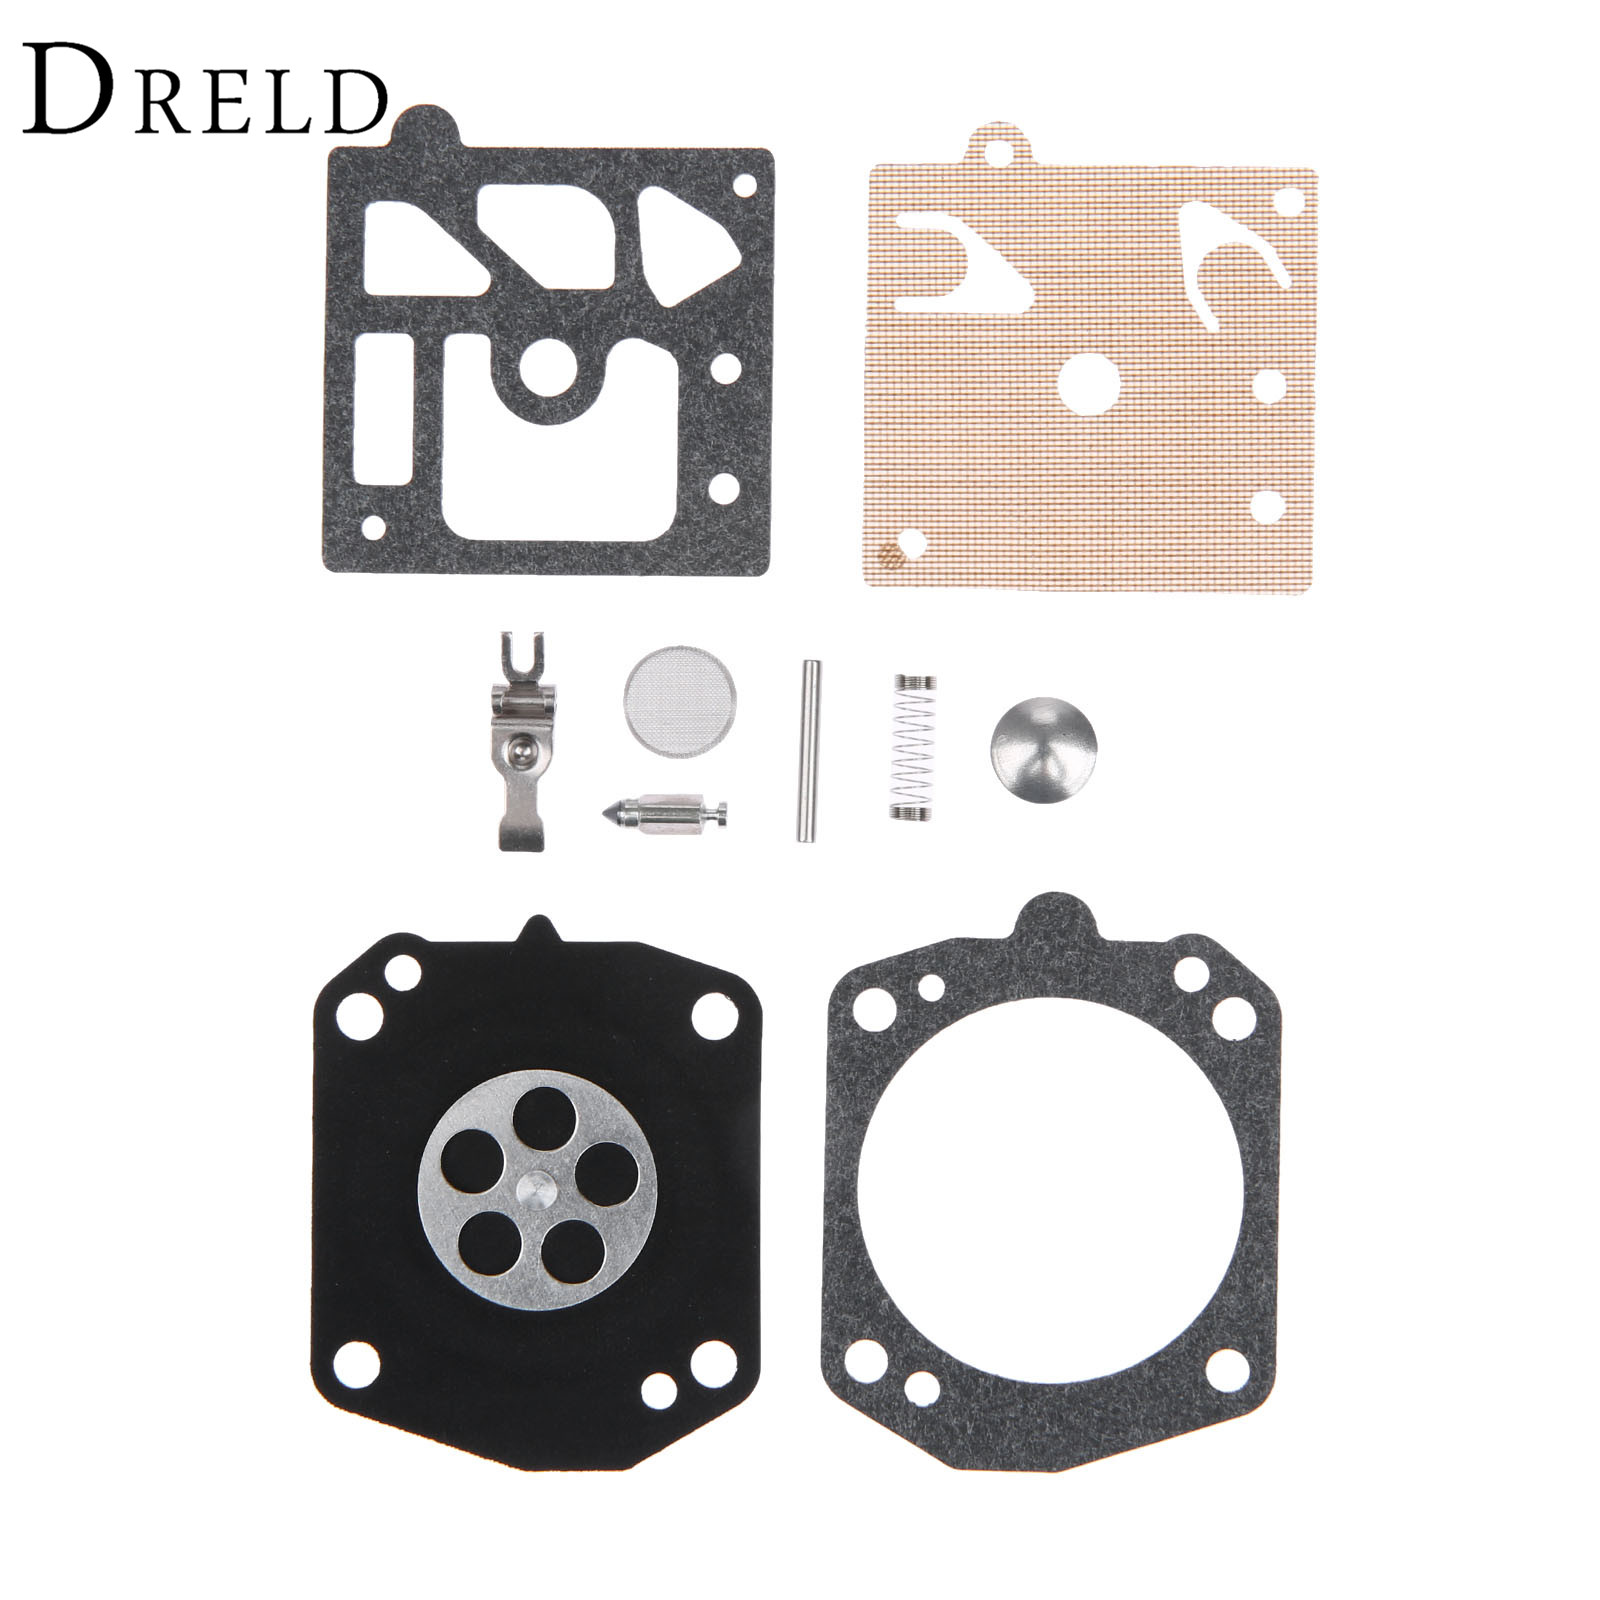 DRELD K10-HD Carburetor Carb Repair Rebuild Kit for Stihl Walbro 029 310 044 046 MS270 MS280 MS290 MS290 MS341 MS361 Chainsaw 2016 new carburetor carb rebuild repair kit k10 wyb for srm 260 srm 261 trimmer replacement k20 wyj type